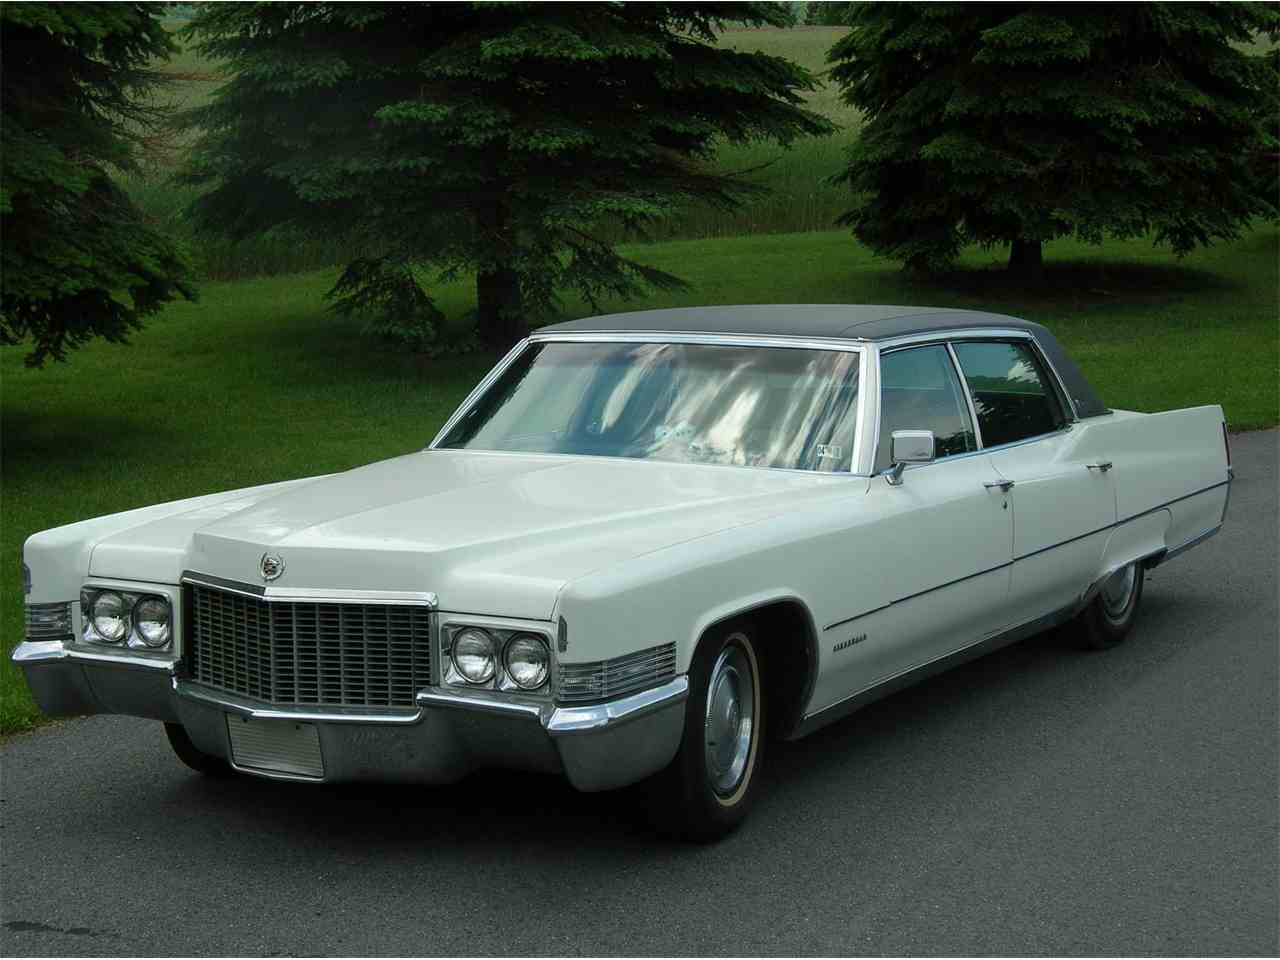 Large Picture of Classic 1970 Cadillac Fleetwood located in Pennsylvania - $13,000.00 - HN7I